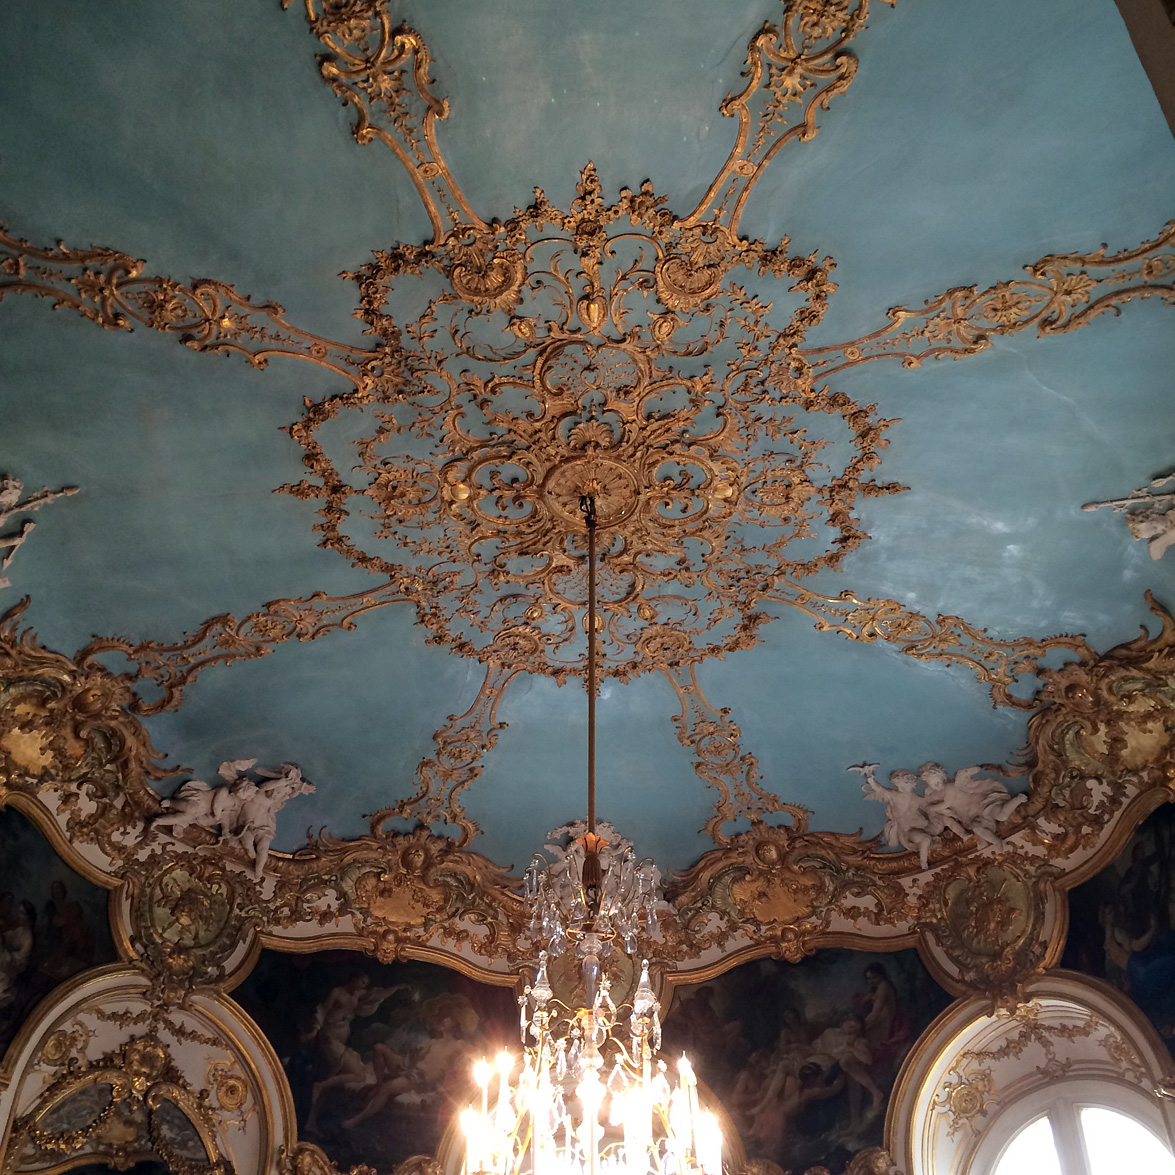 (above) The ceiling of the Princess's oval salon.